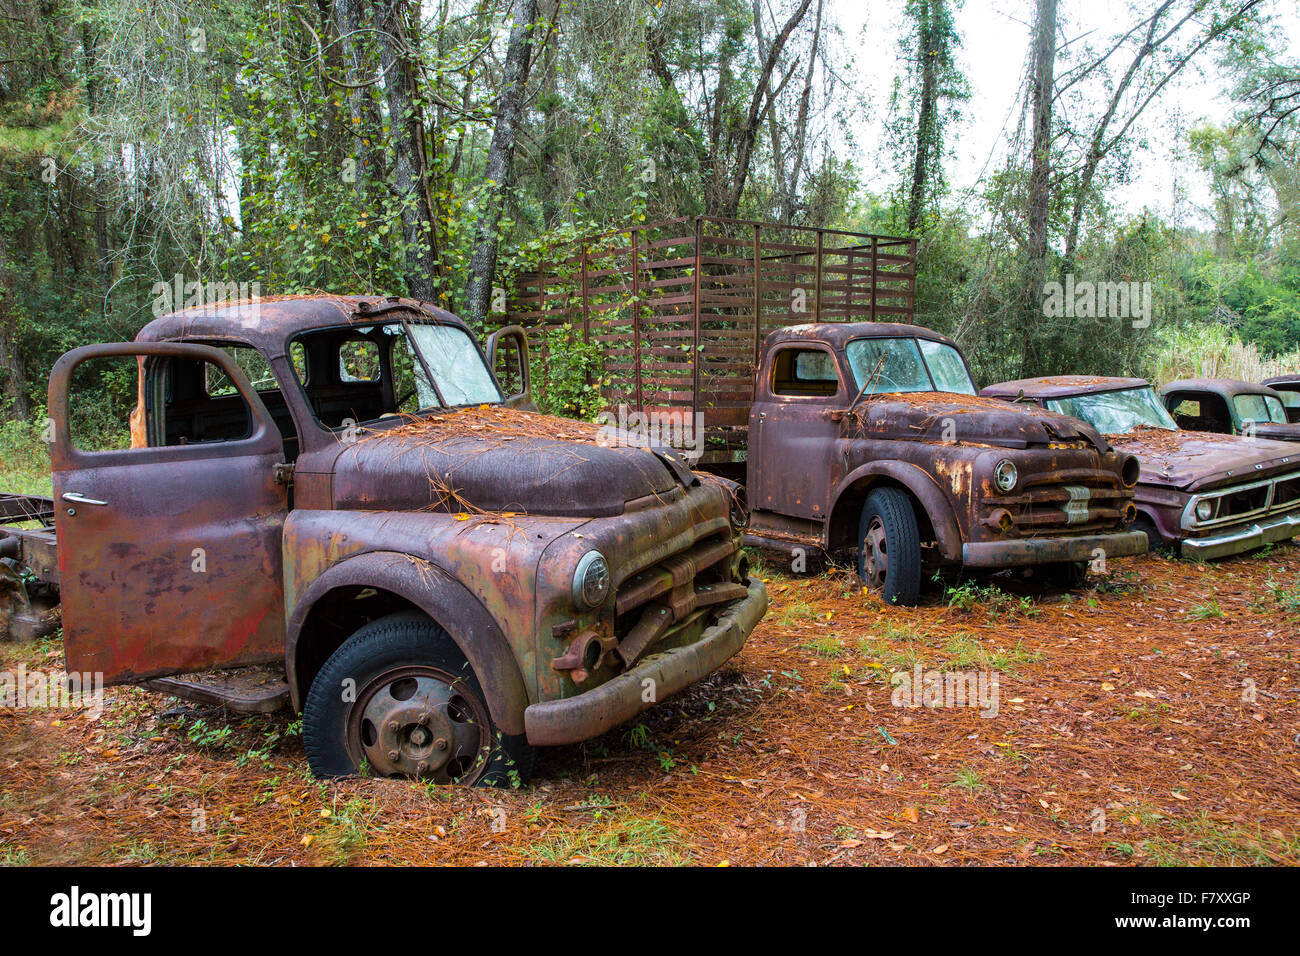 Old rusted abandoned trucks and cars - Stock Image